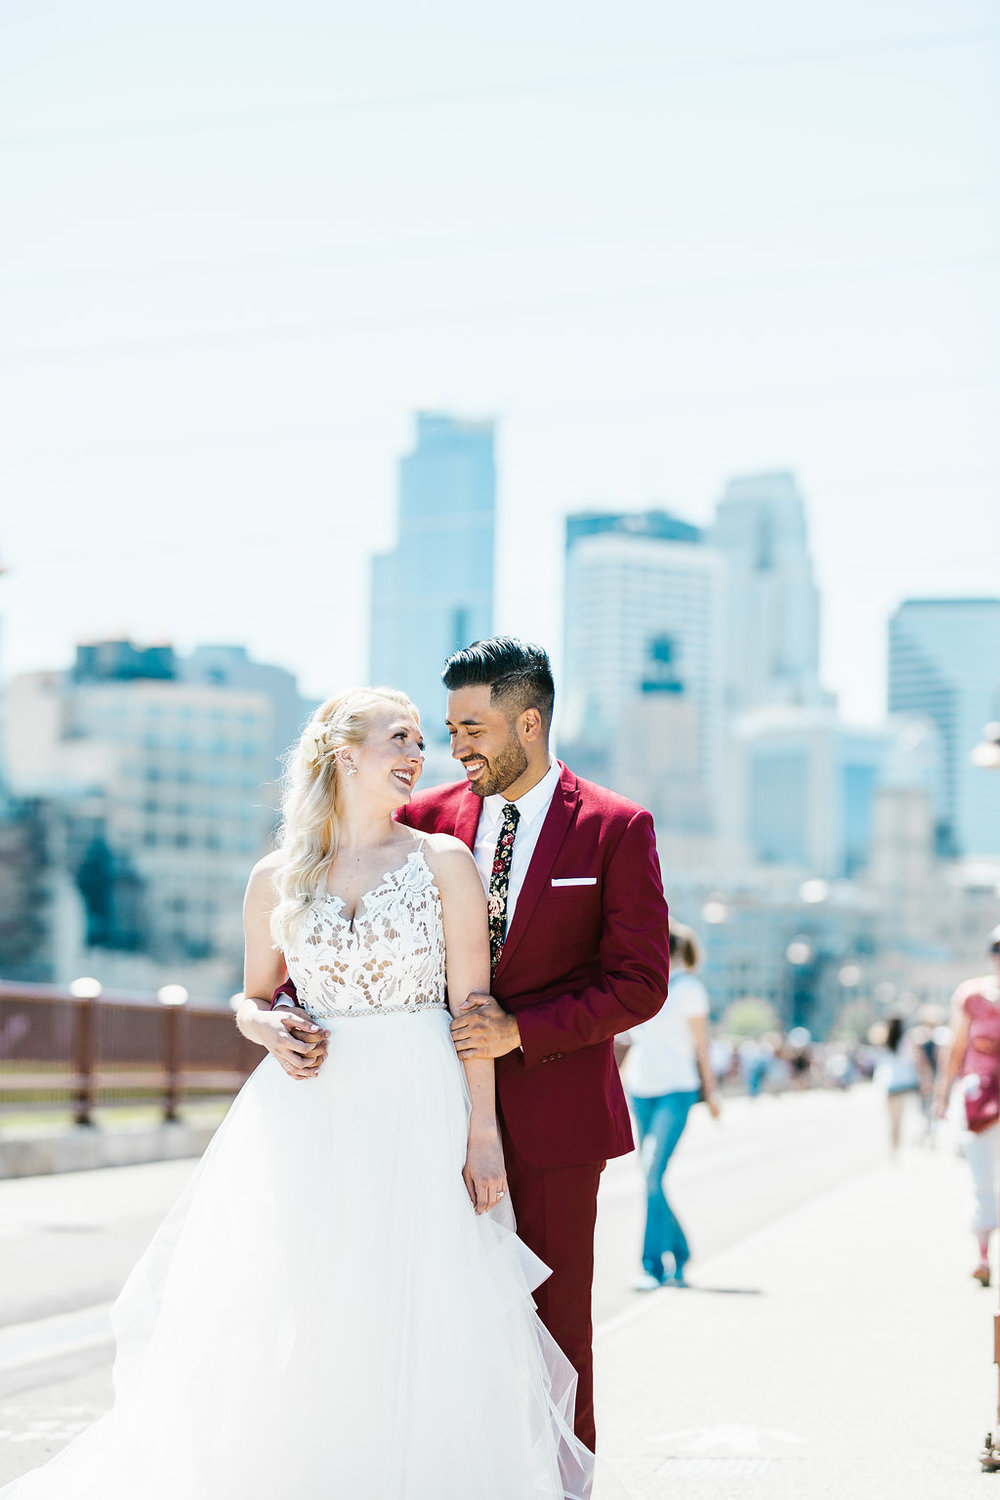 bride and groom on the minneapolis bridge for wedding photos | Aaron T Photography | Nicolett Island | Sixpence Events and Planning day of coordinating and wedding blog